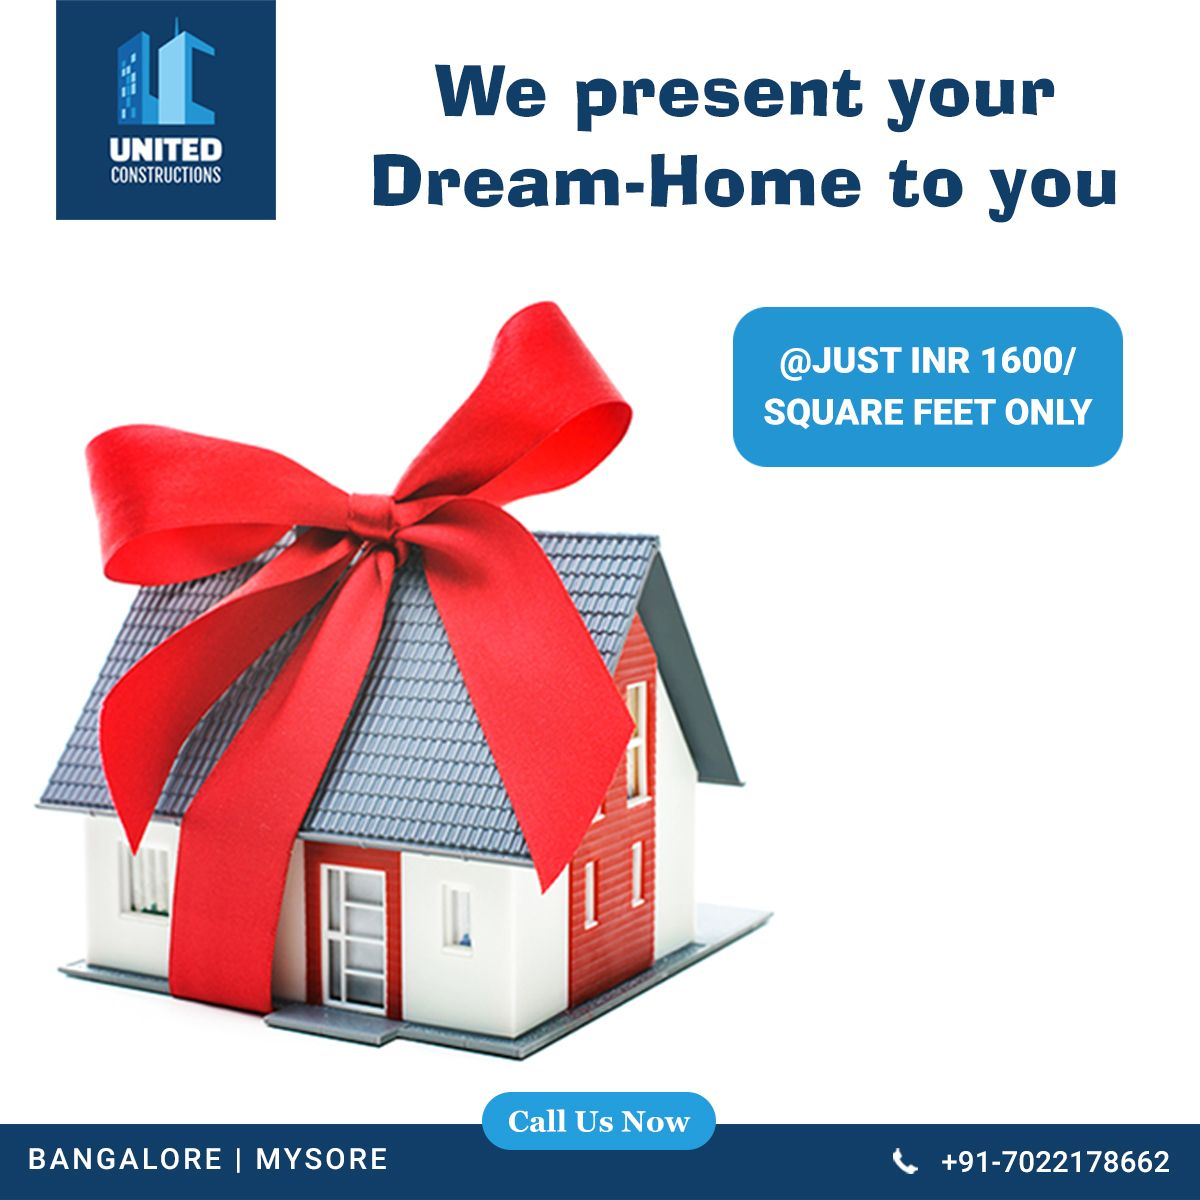 With Thorough Experience We Go Long Way In Flawless Perfect And Punctual Execution We Present Your Dream Home Home Drea Dream House The Unit Construction